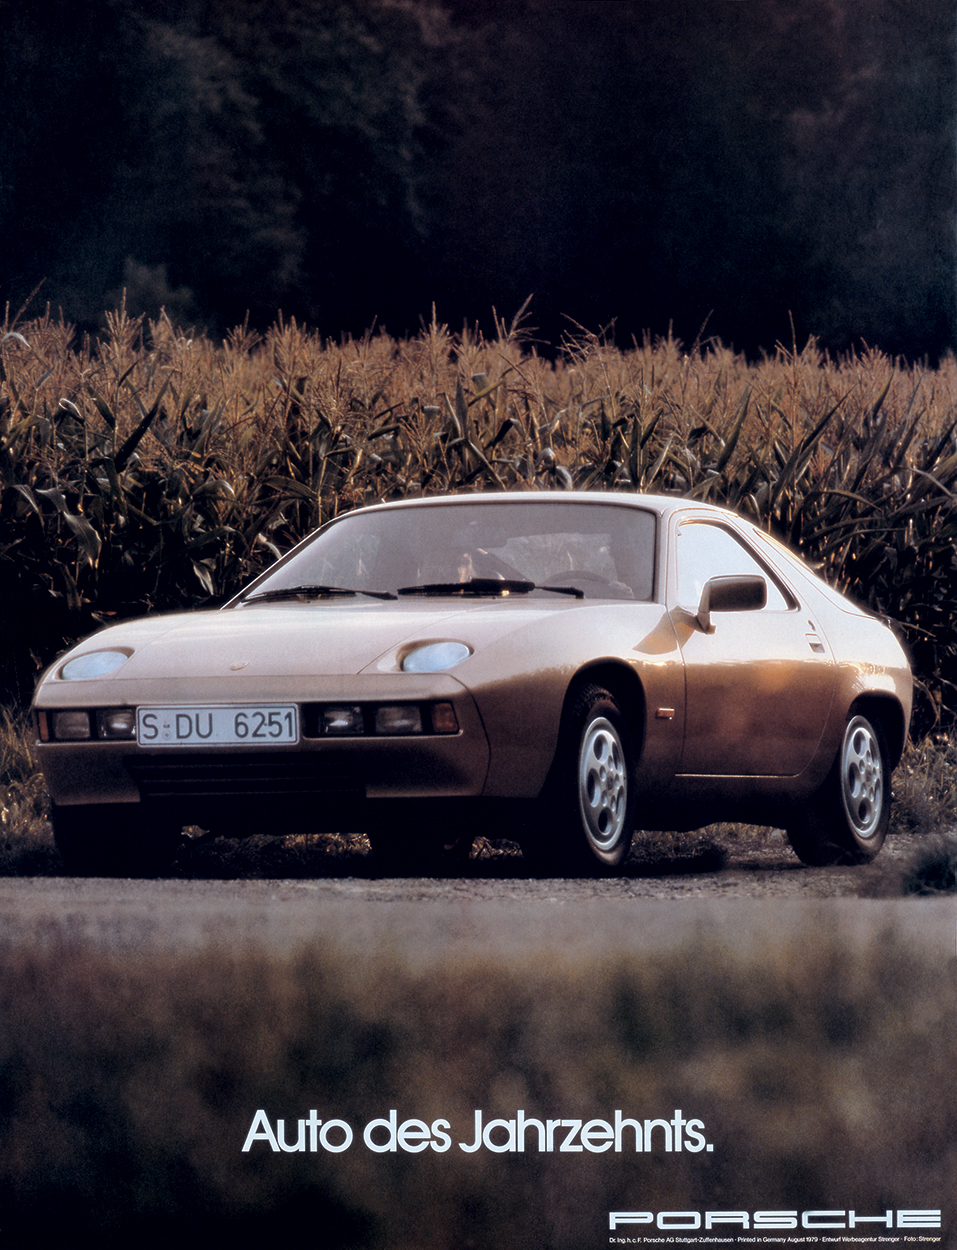 Model Guide: The 928, Porsche's V8-powered luxury muscle car